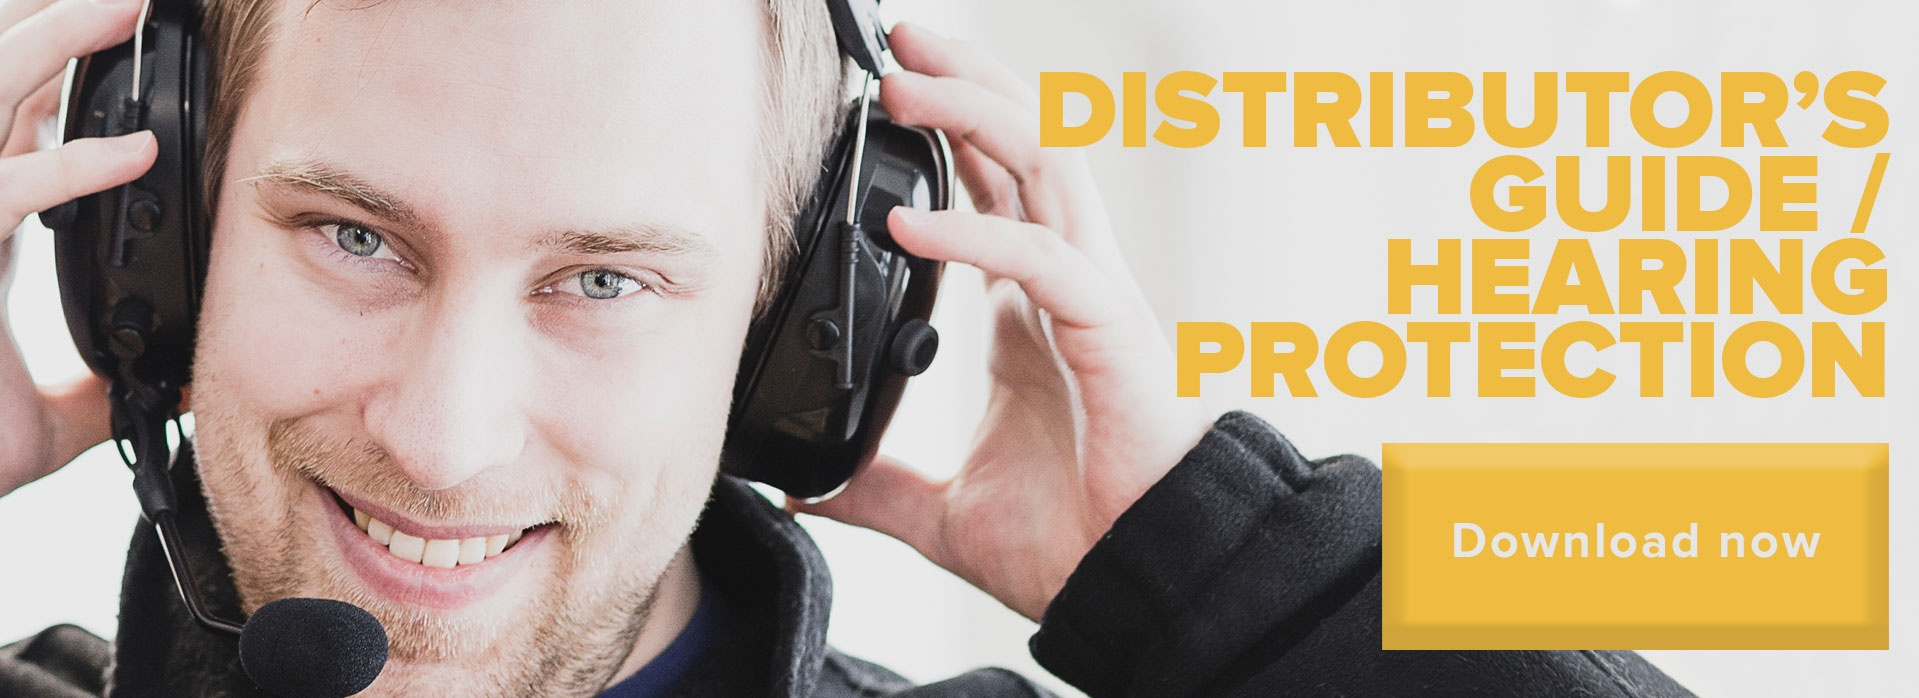 Savox Distributor's guide to hearing protection Call-to-action button